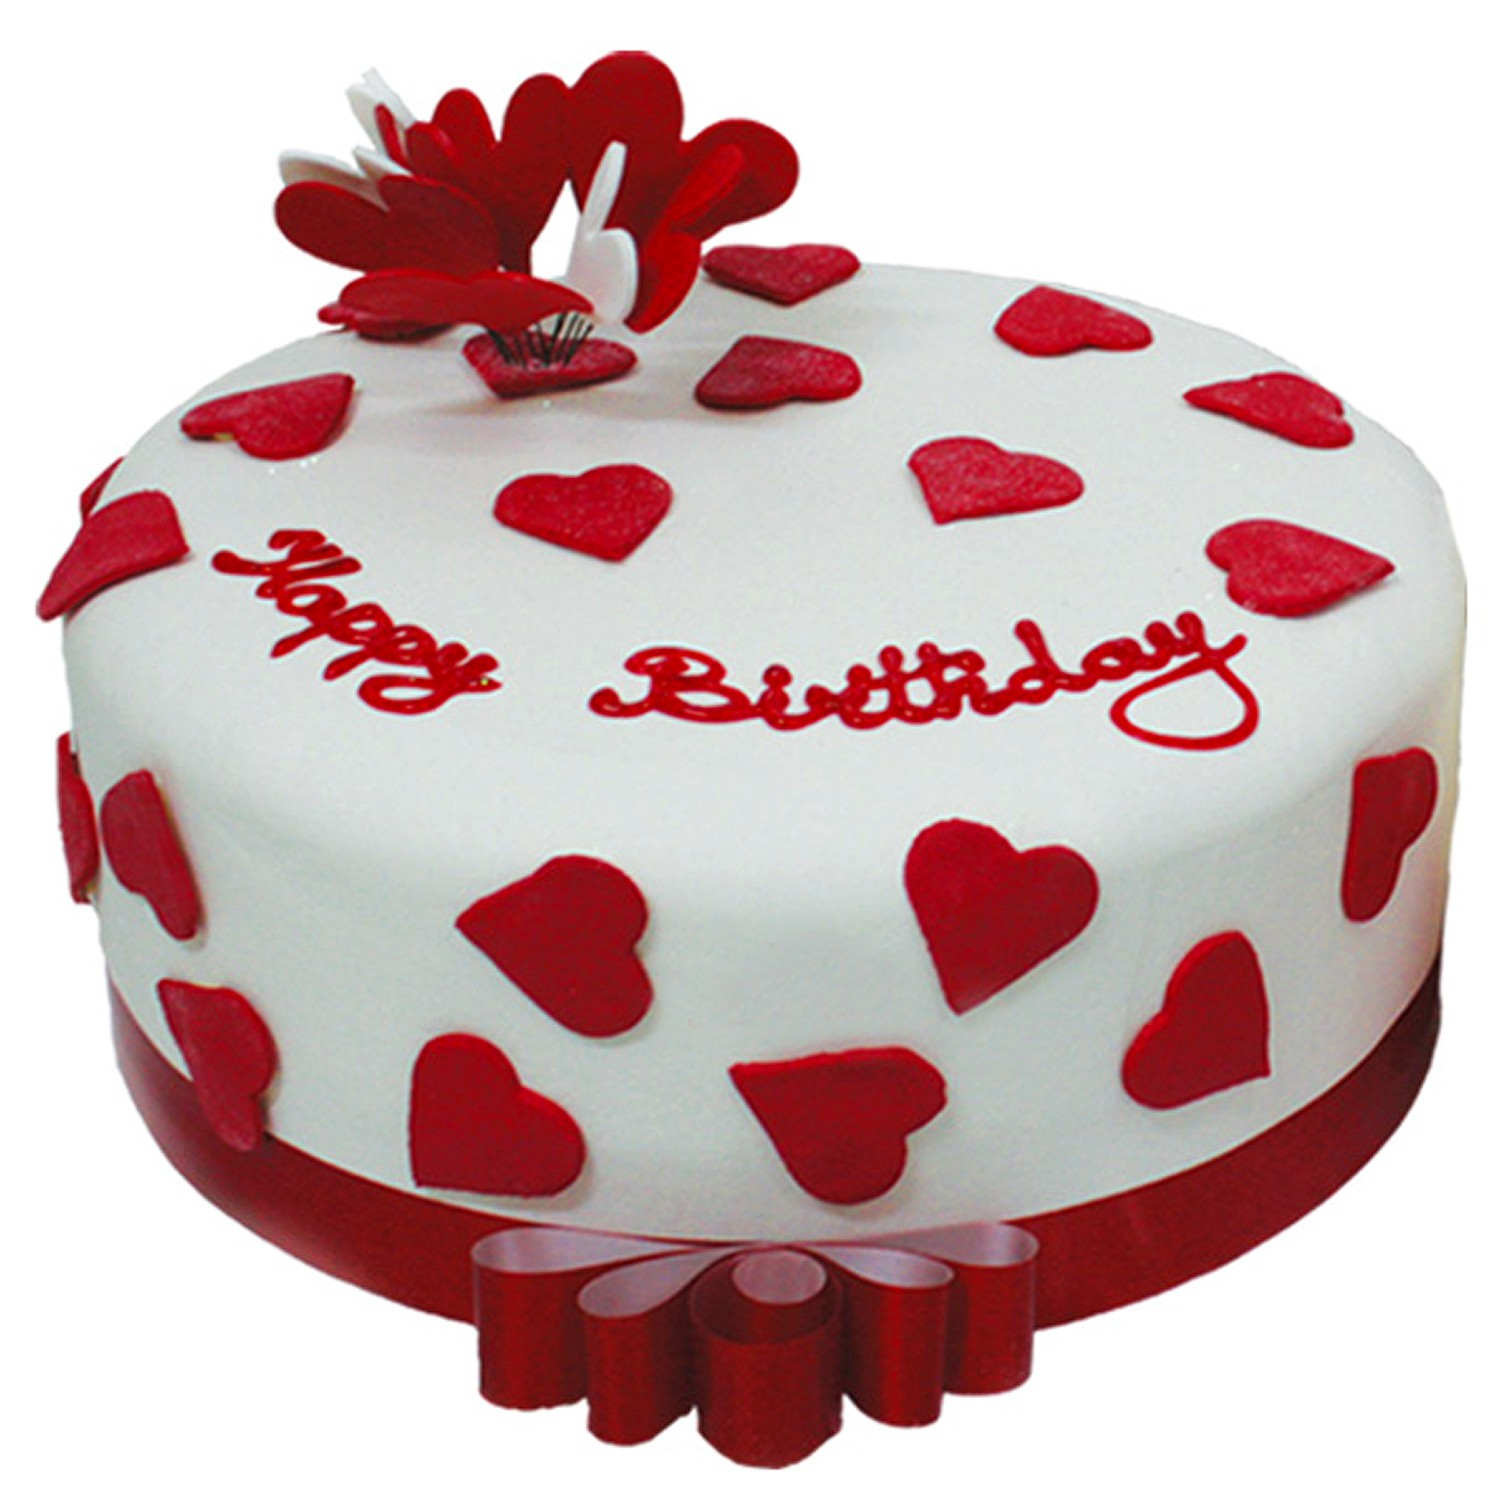 Happy Birthday Cakes Pictures Free Birthday Cake Images Download Free Clip Art Free Clip Art On